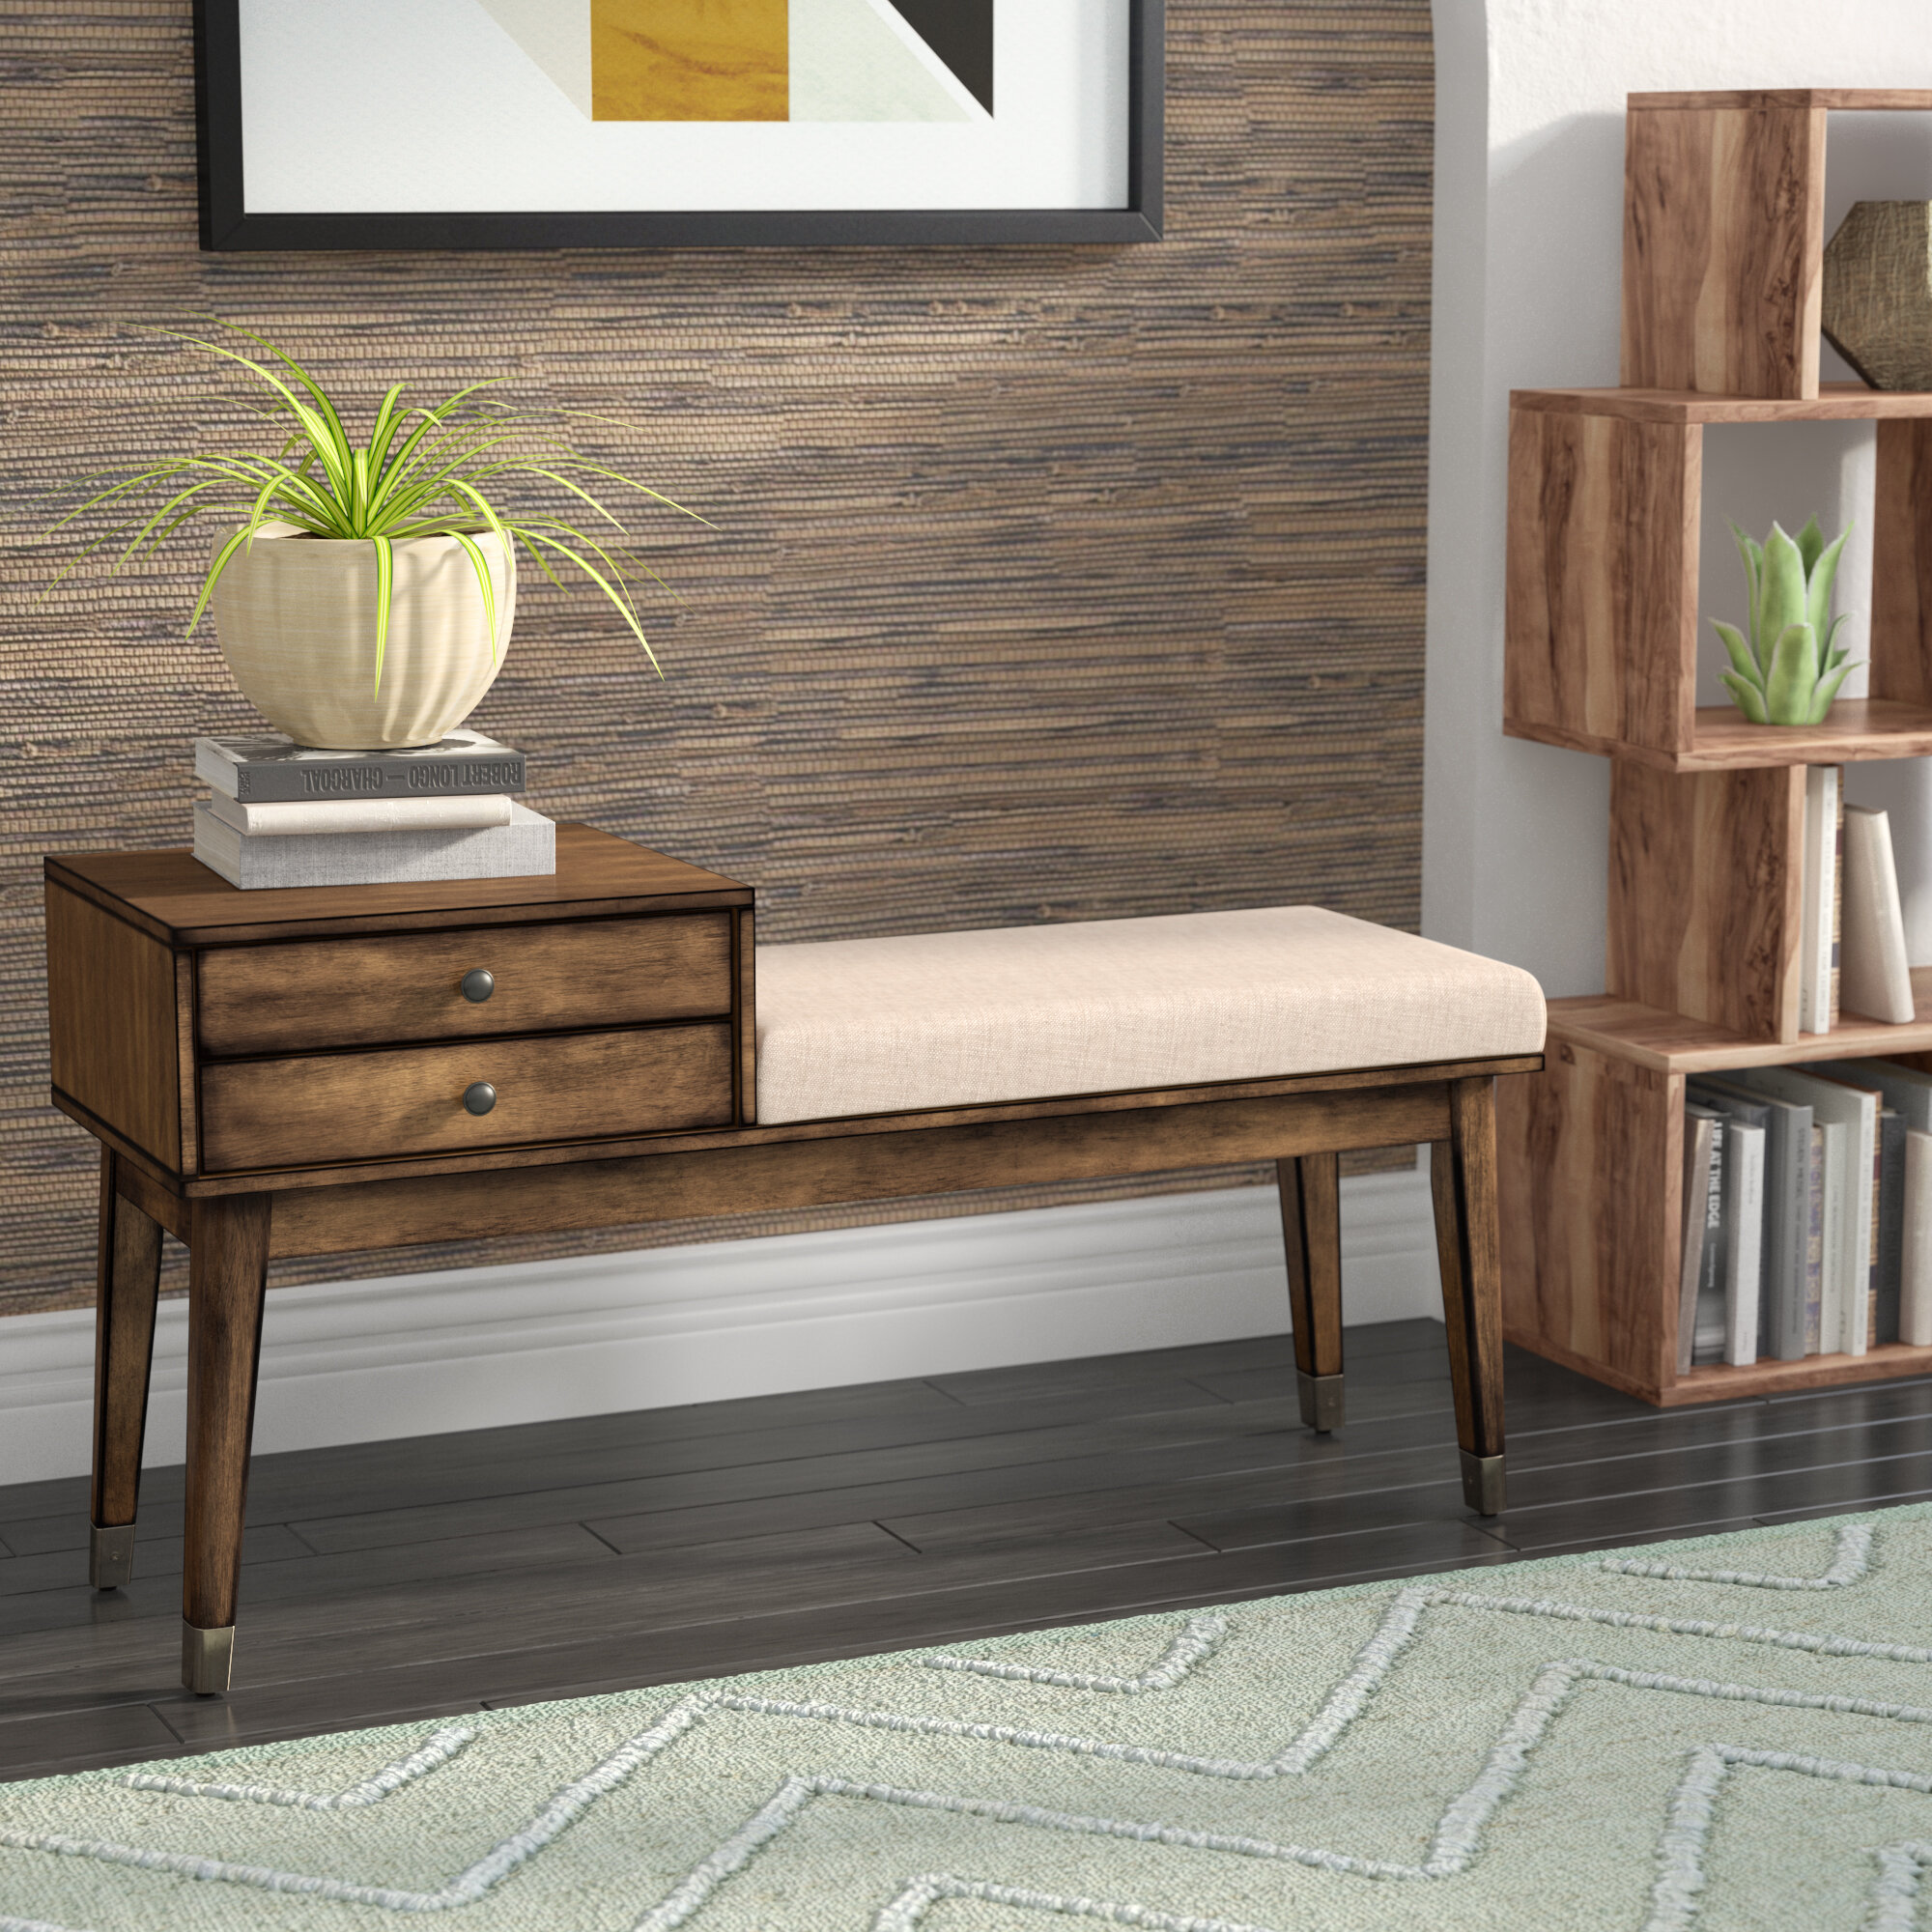 pictures new room photos bathgroundspath bench storage furniture awesome com living cube of and july